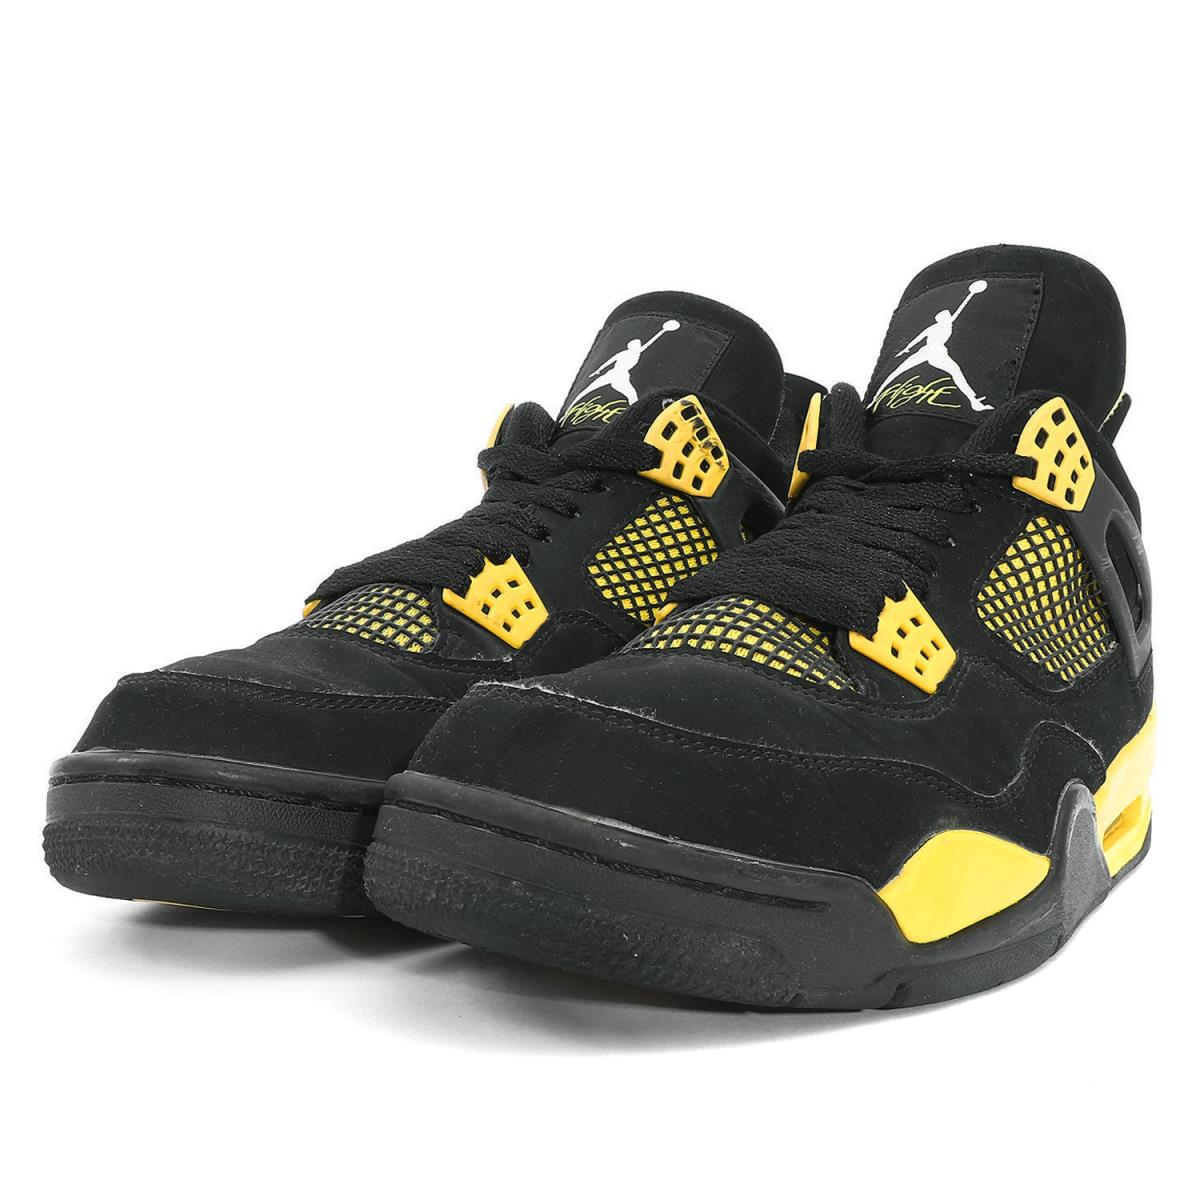 competitive price 2cd51 993bf NIKE (Nike) AIR JORDAN 4 RETRO THUNDER (308,497-008) black X tour yellow  US9(27cm)